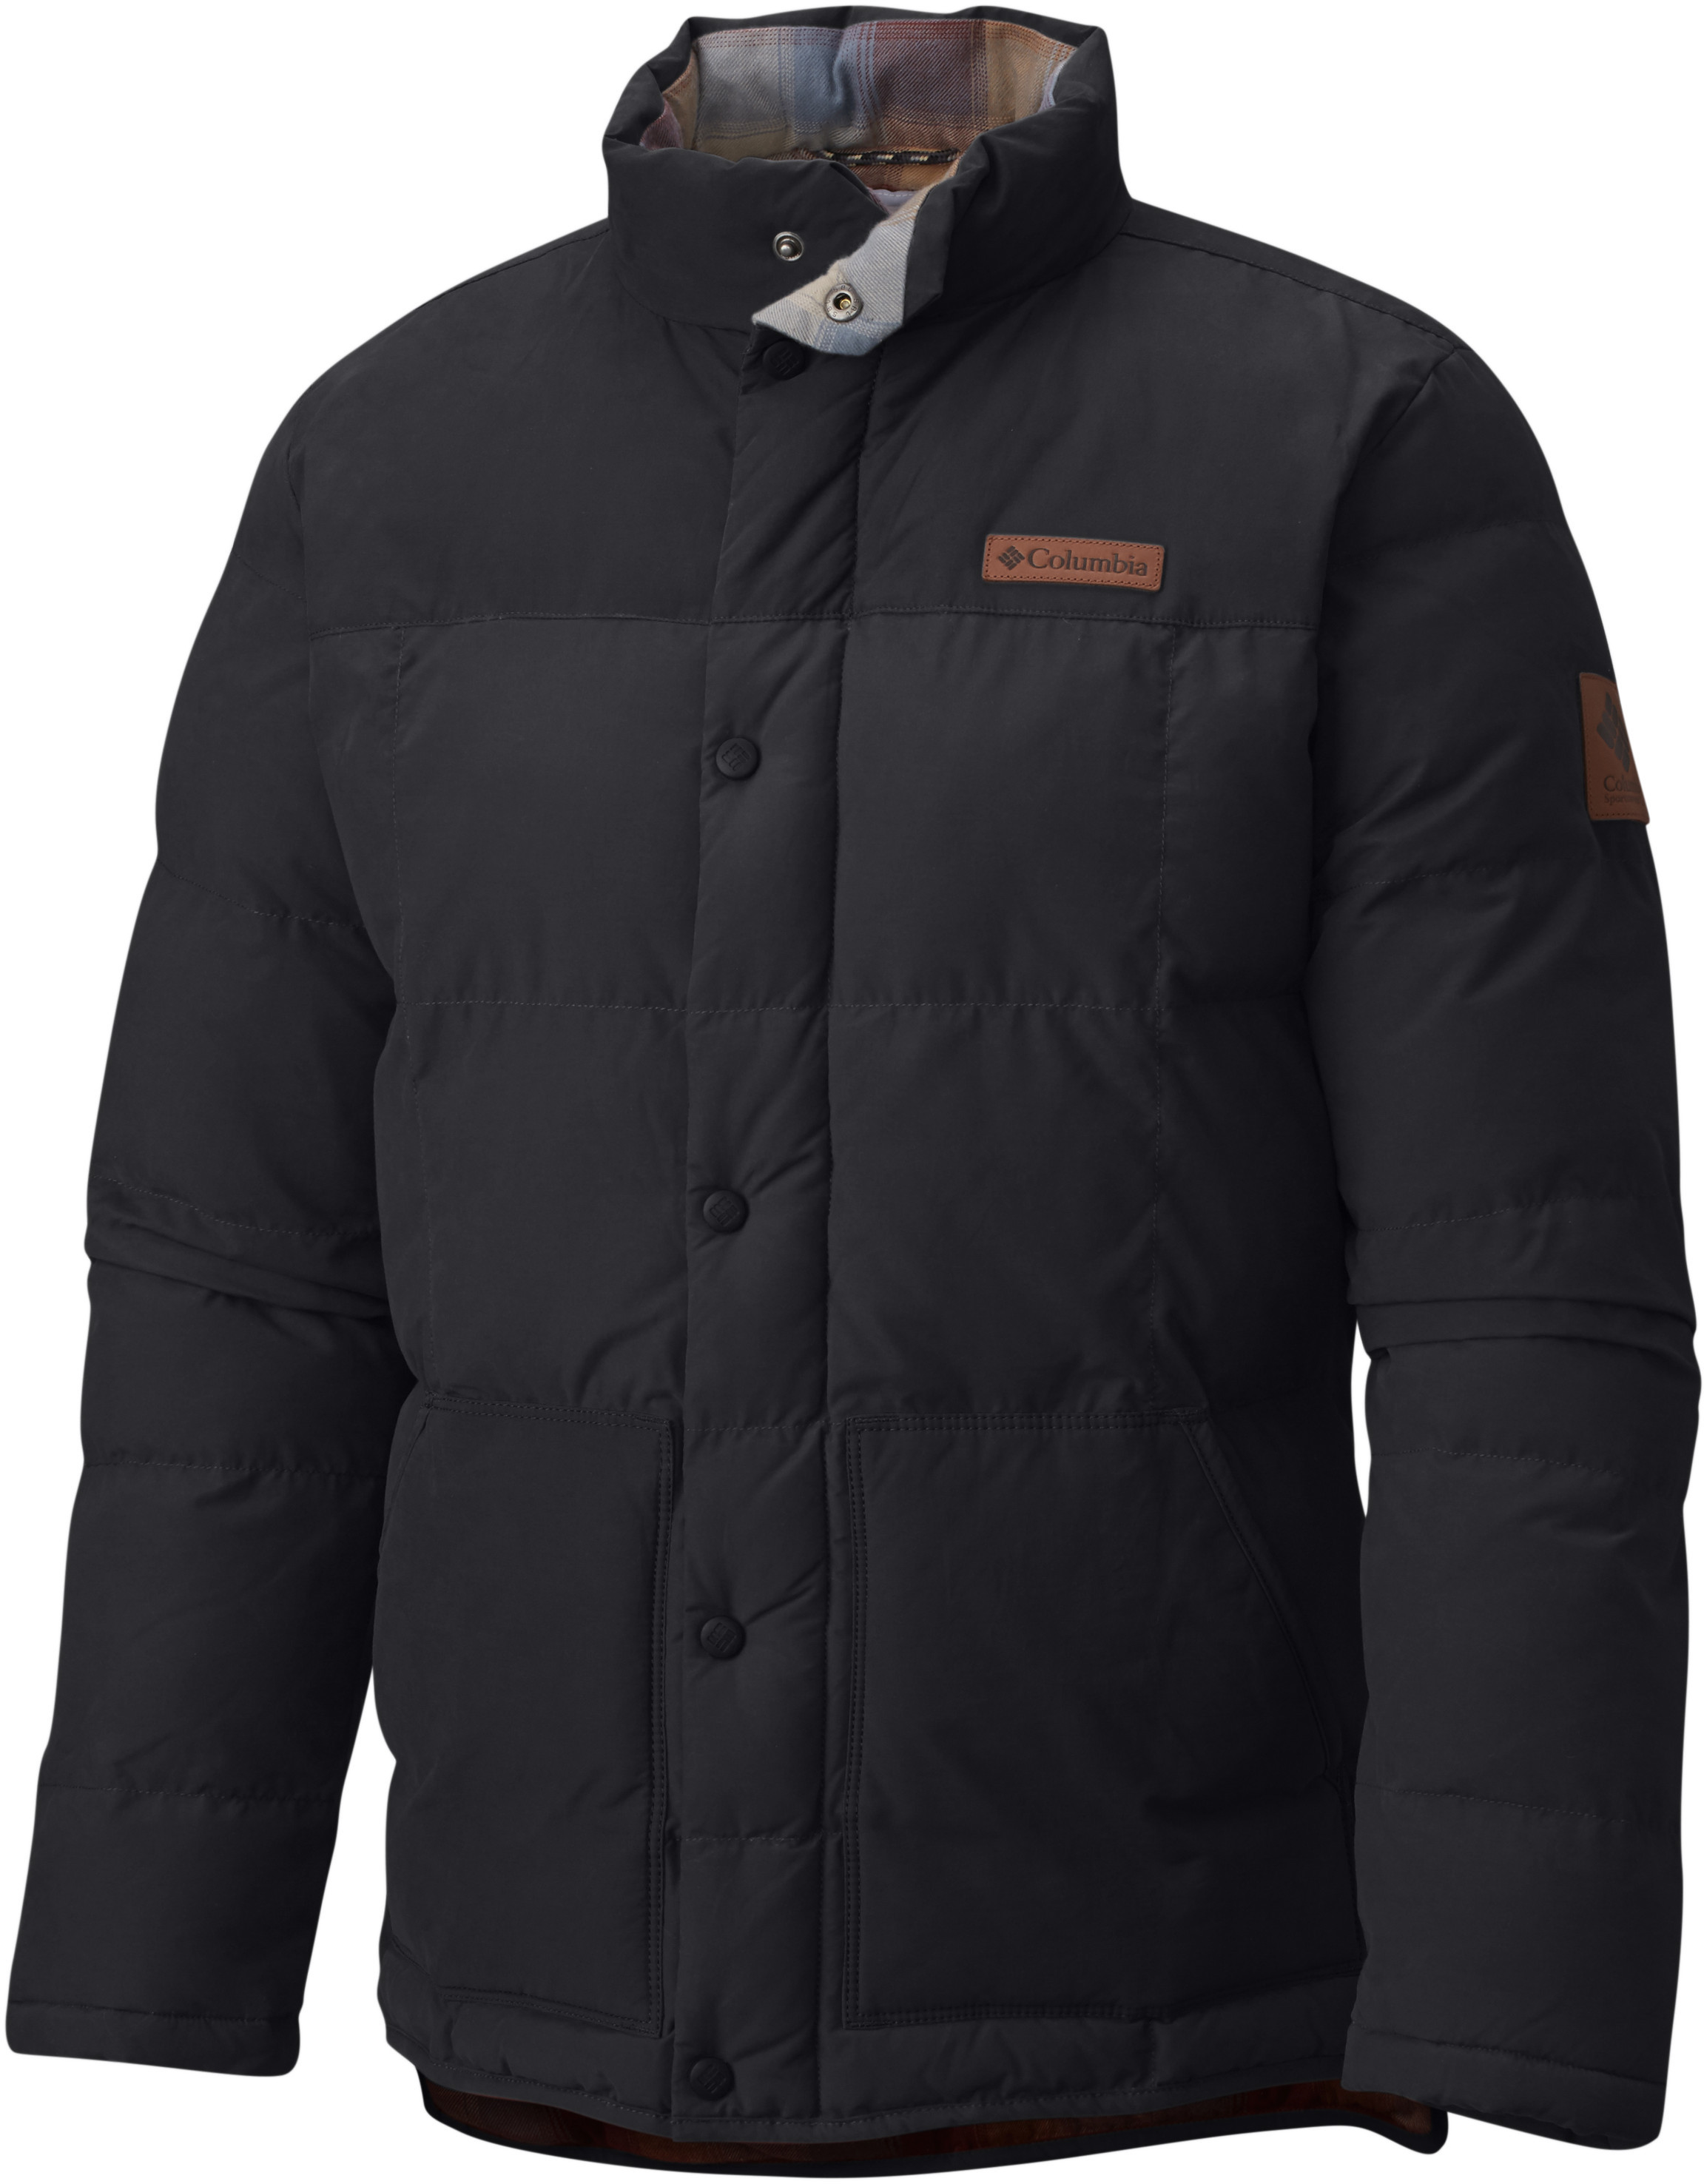 6acfca15a Columbia South Canyon Bluff Jacket - Men's, Up to 51% Off with Free S&H —  CampSaver